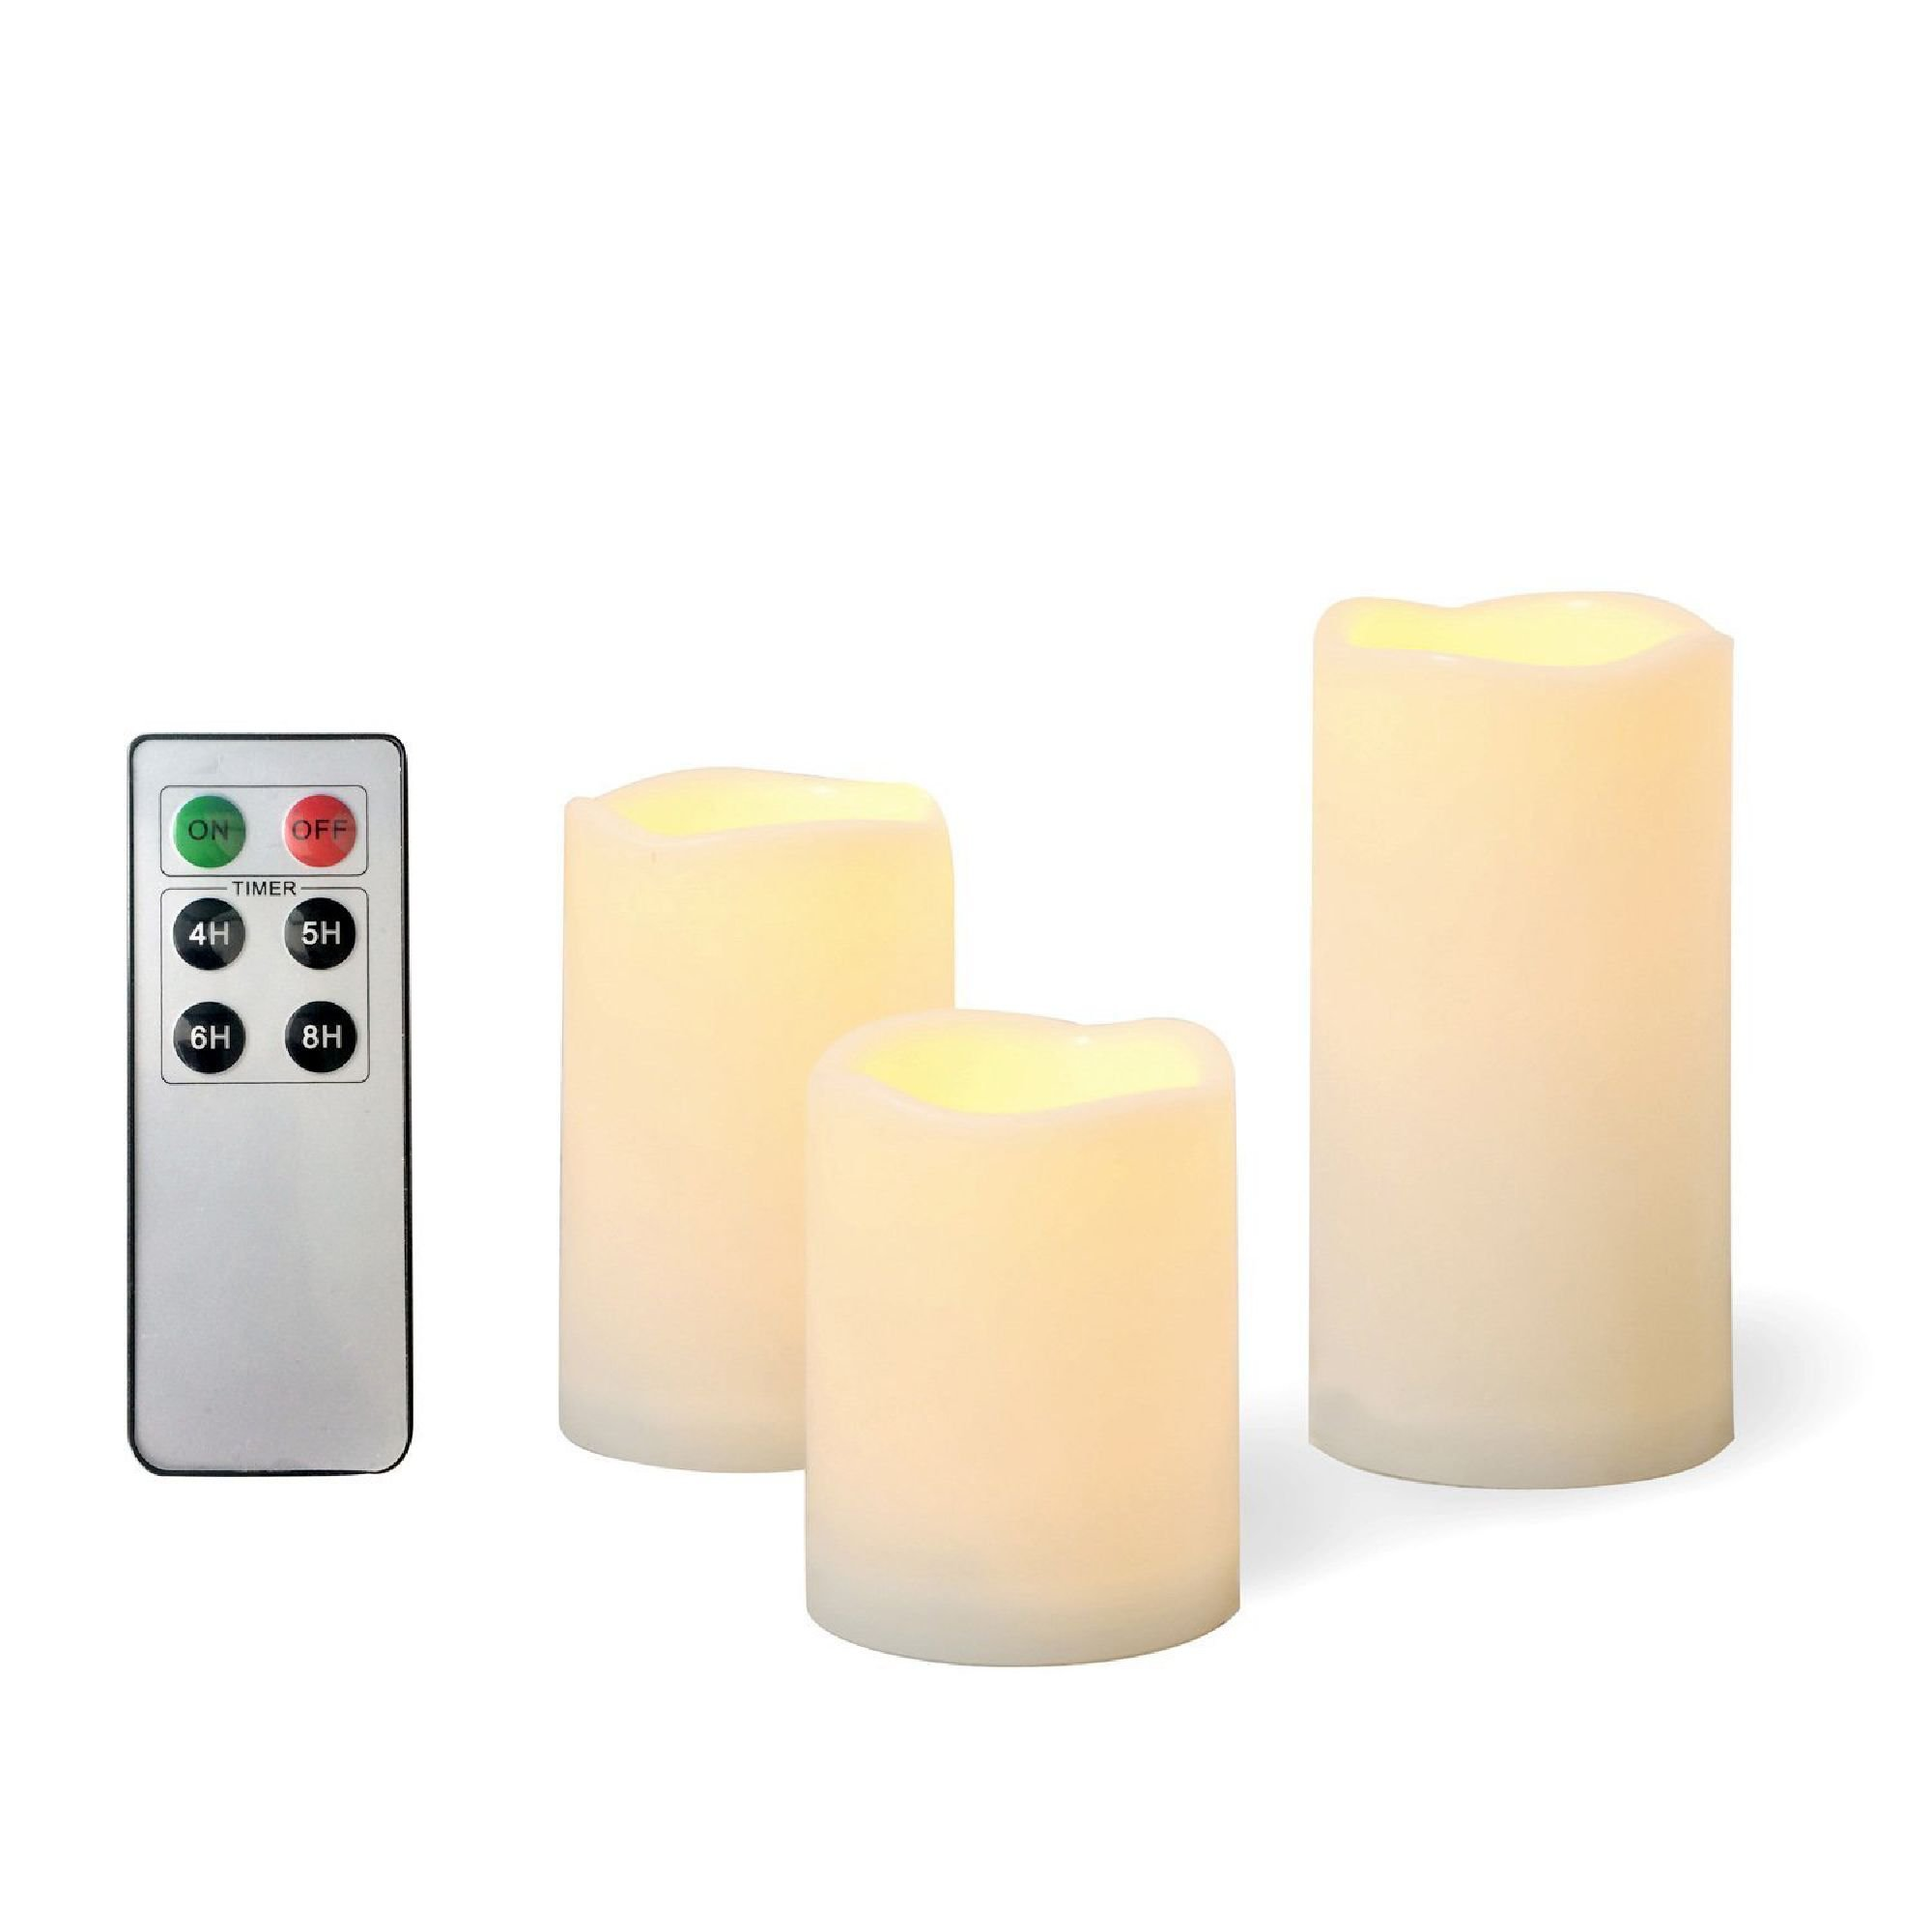 EcoGecko 3 Piece Outdoor Flameless Candles with Remote Timer Plastic Realistic Flickering Battery Operated LED Pillar Melted Edge Party Wedding Birthday Home Holiday Décor Gifts 3 Pack